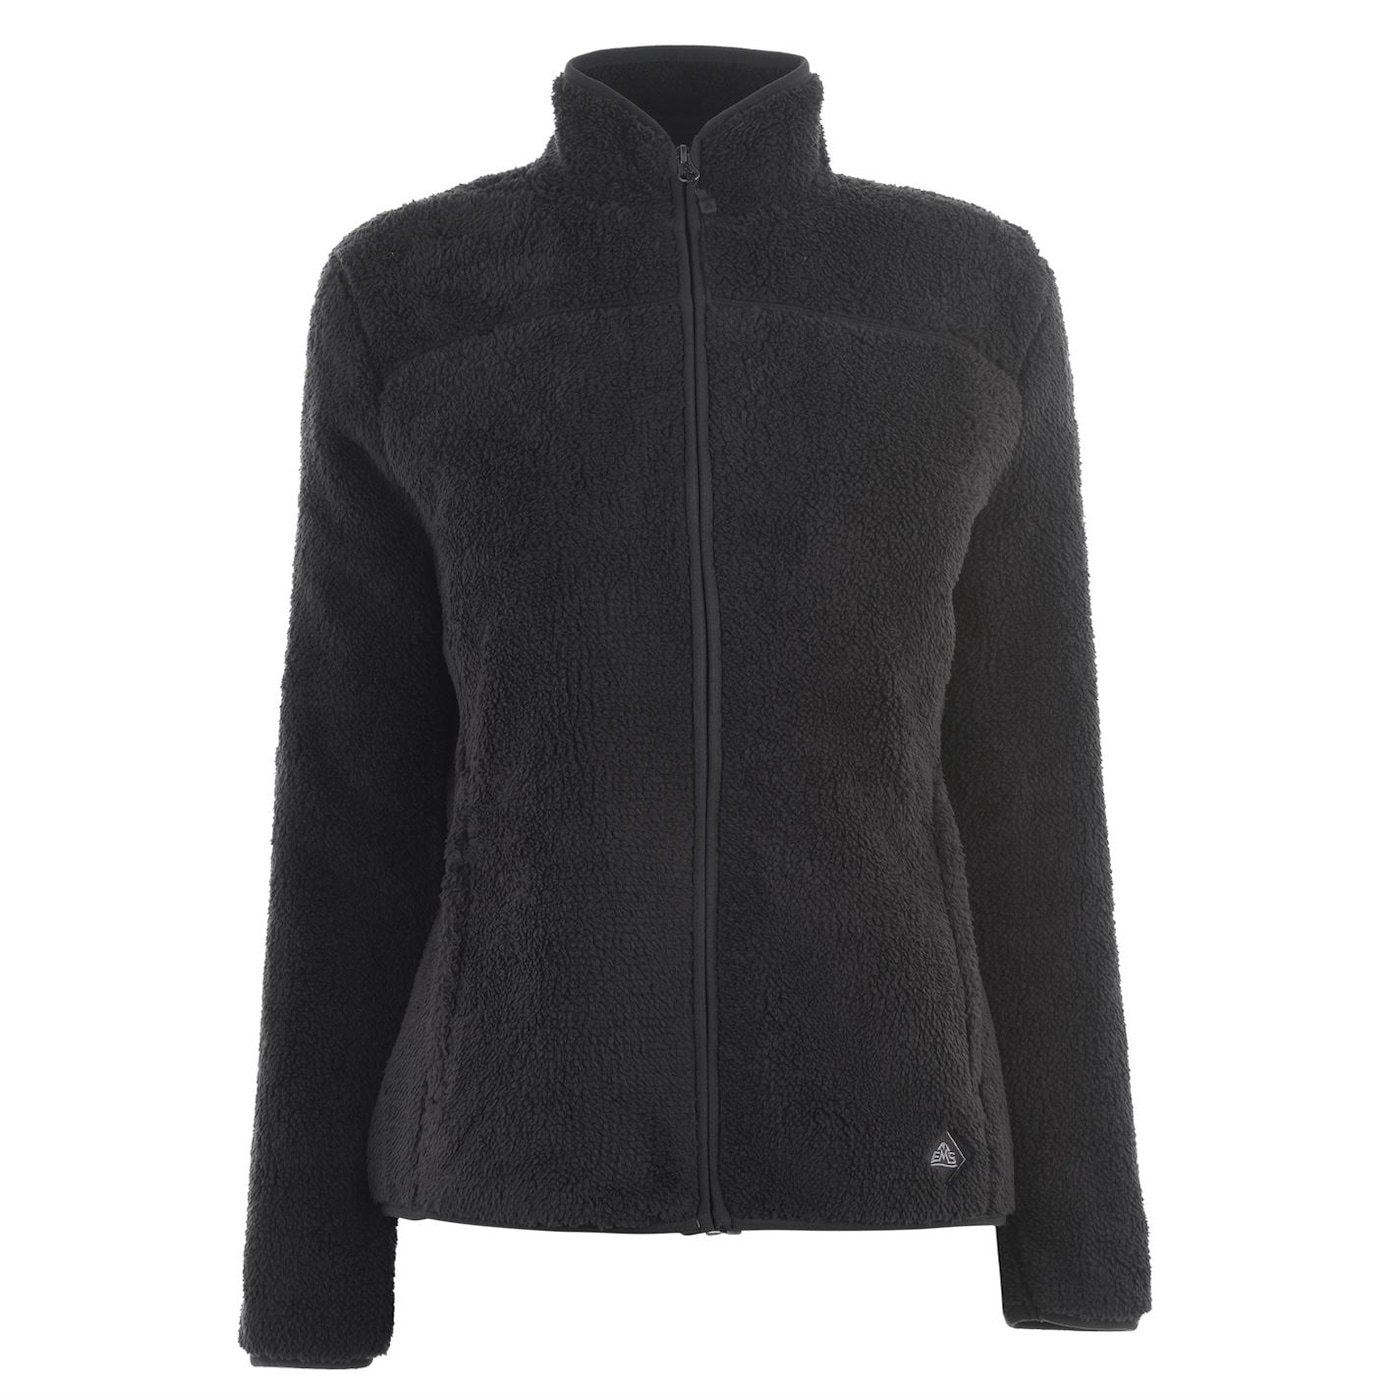 Eastern Mountain Sports Full Zip Fleece Womens